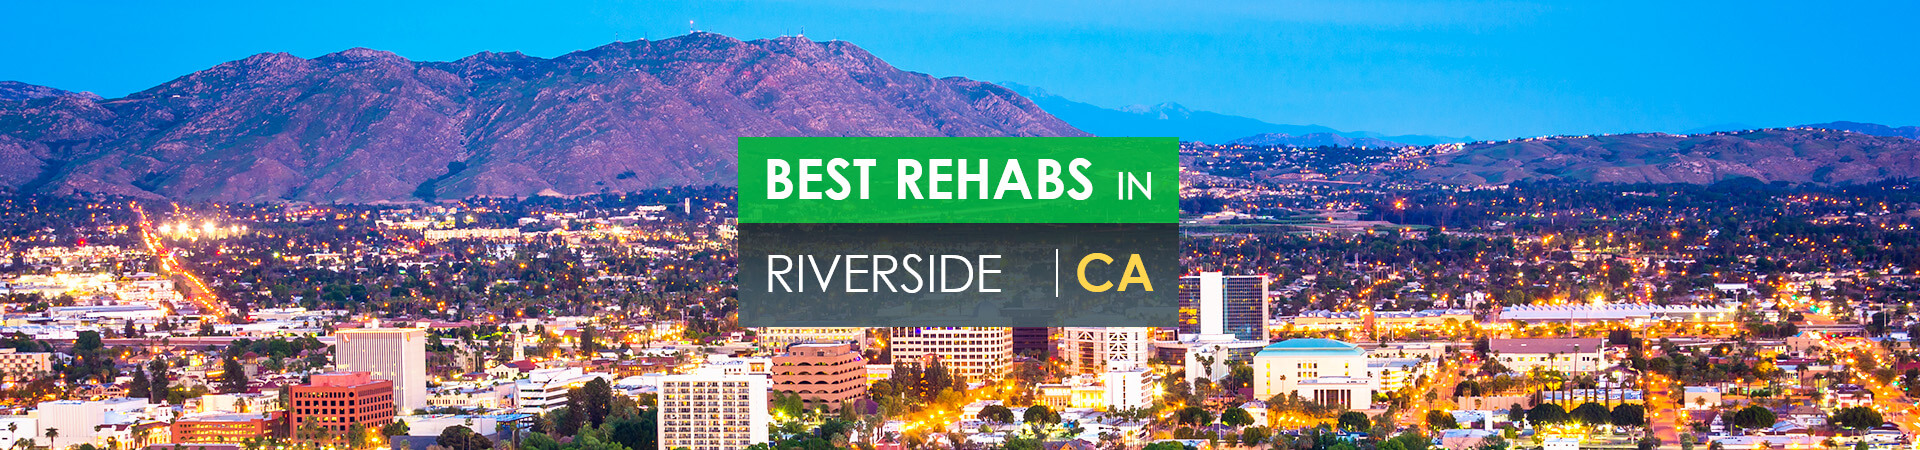 Best rehabs in Riverside, CA